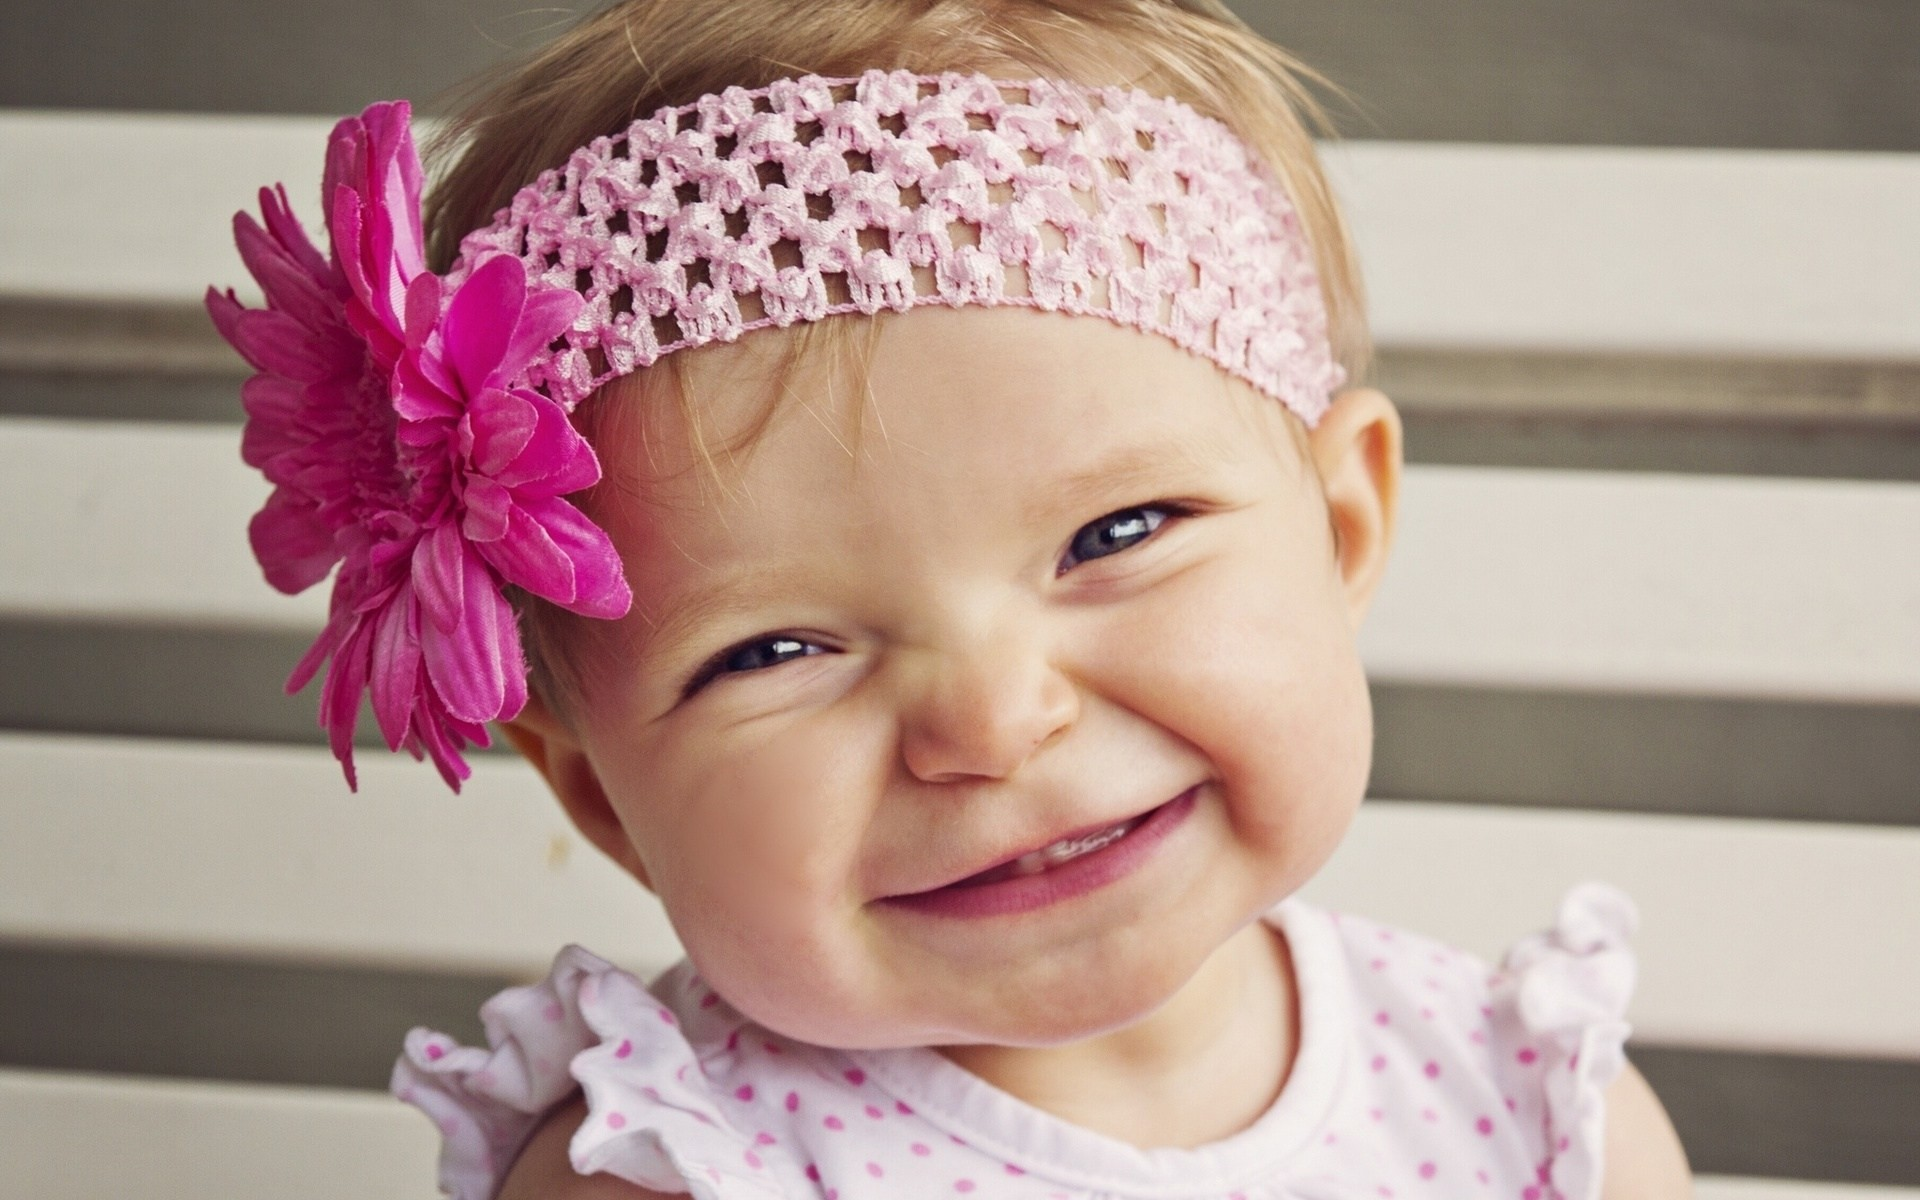 Download Cute Baby Girl Smile Wallpaper Free Wallpapers